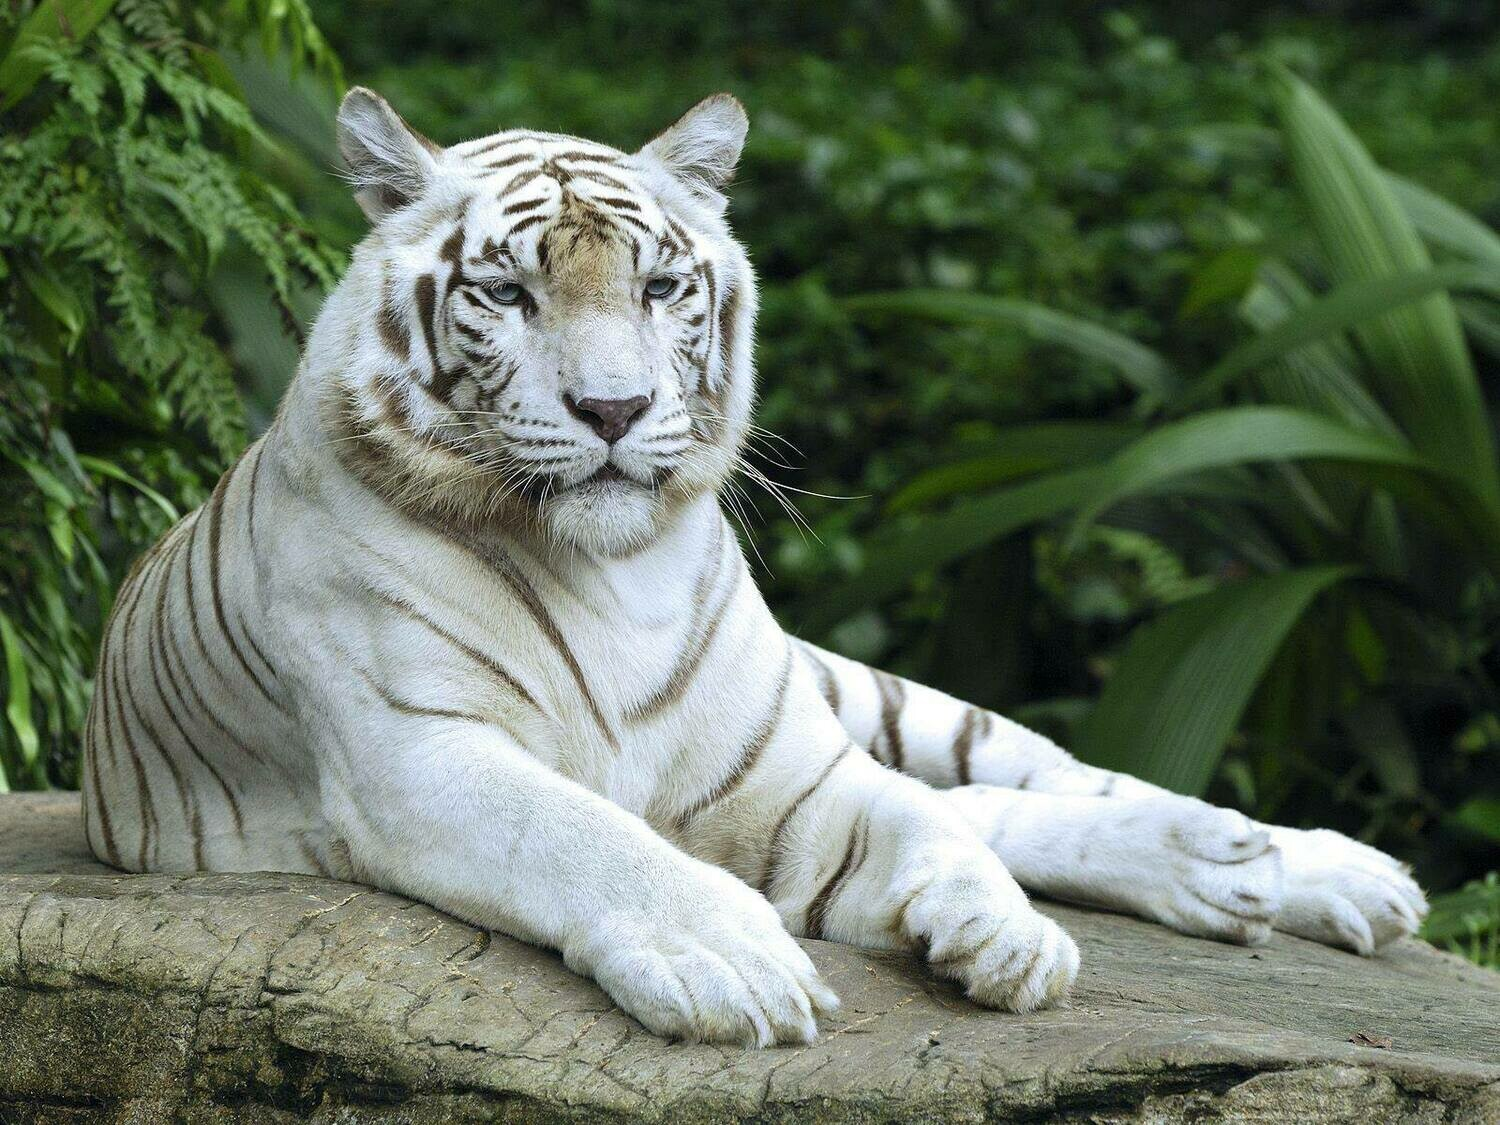 White tiger 01 - Full Drill Diamond Painting - Specially ordered for you. Delivery is approximately 4 - 6 weeks.